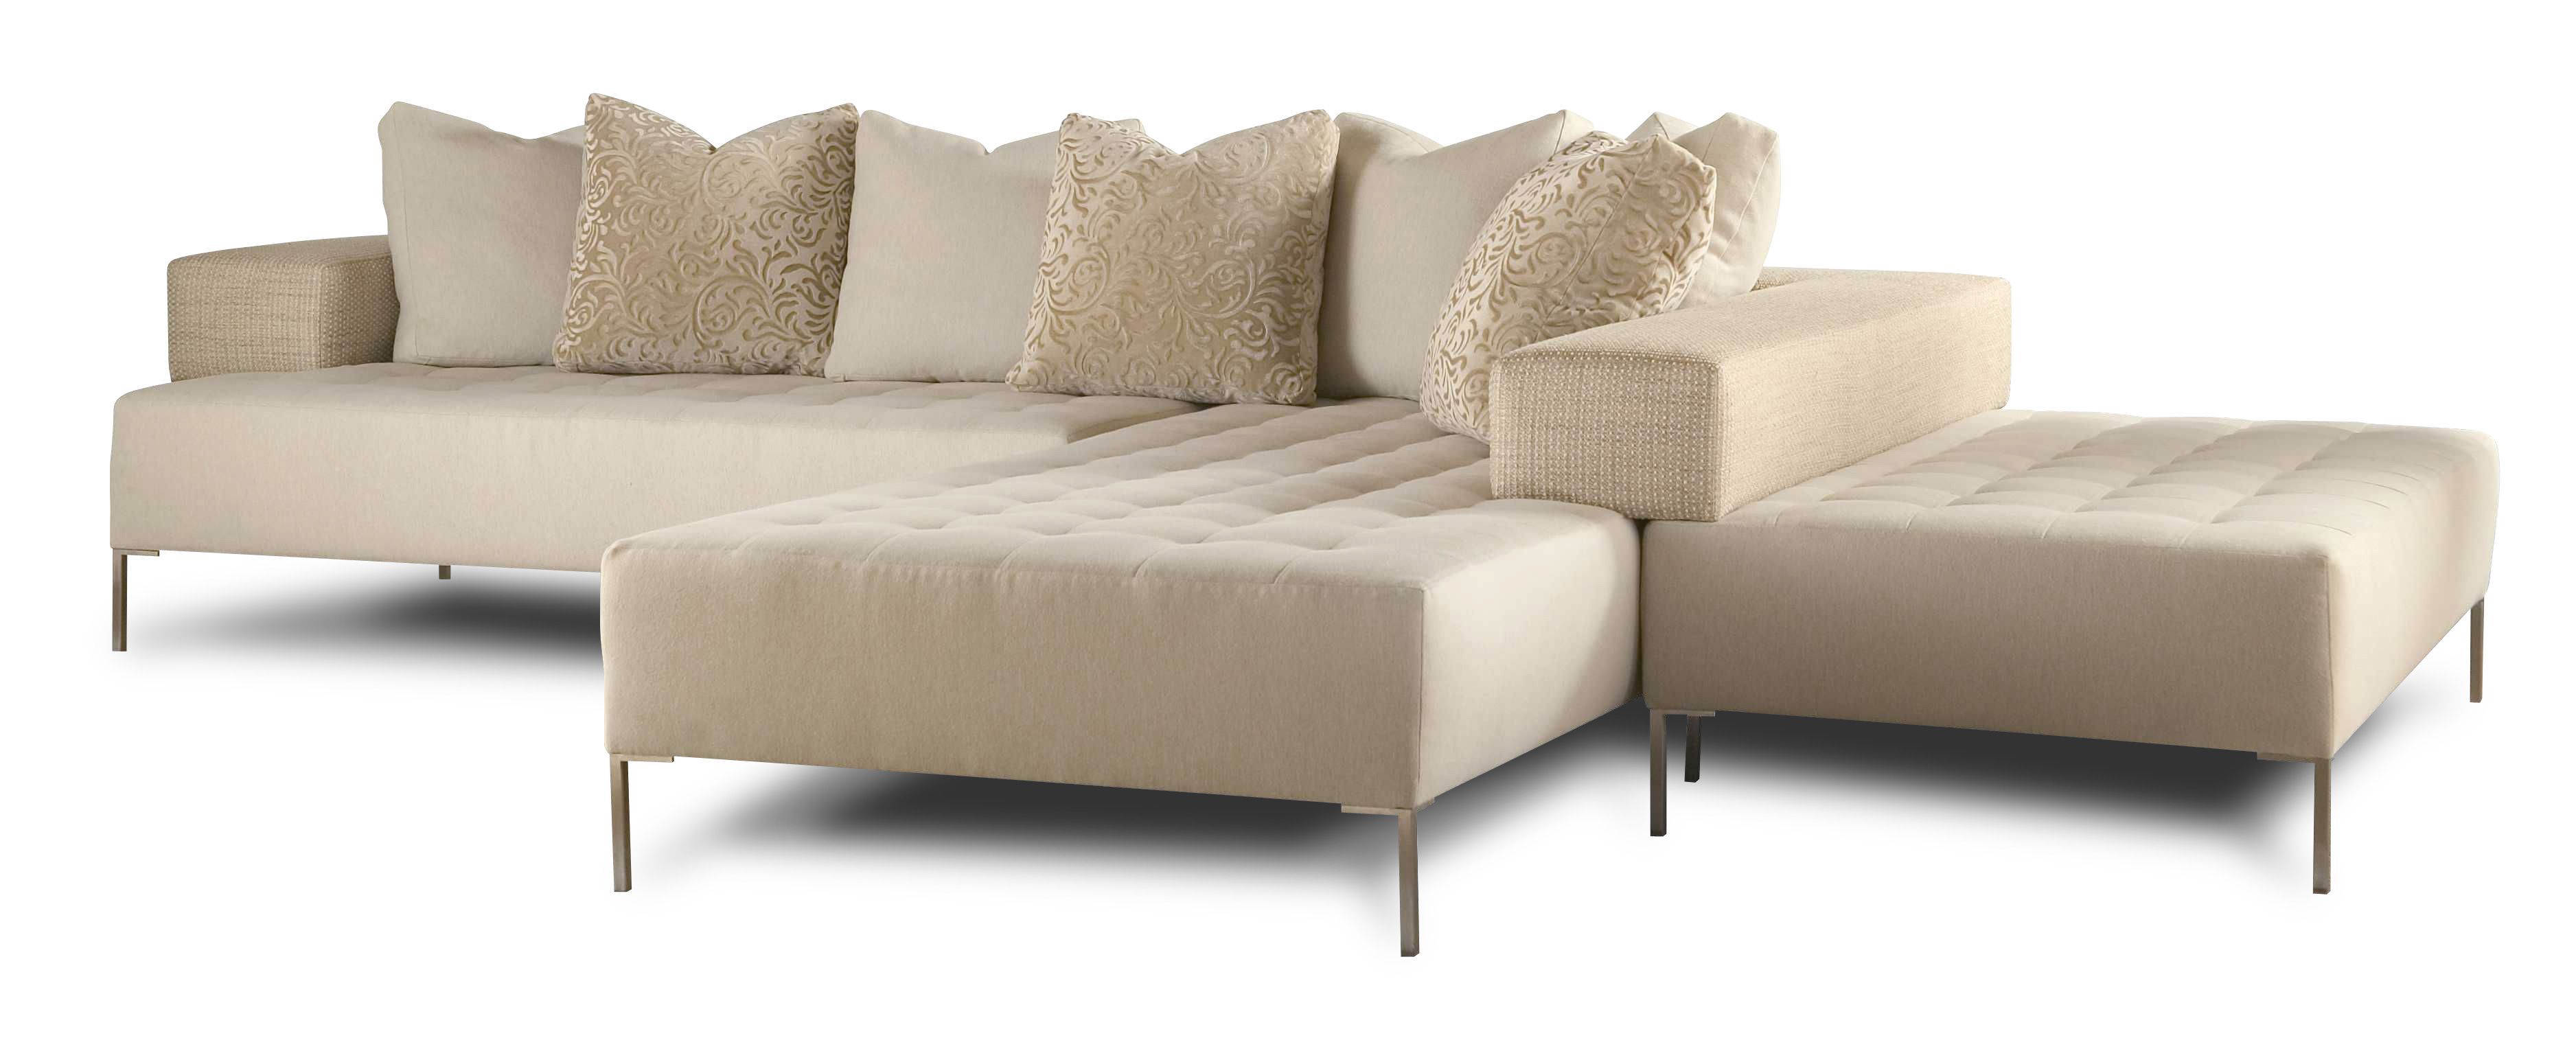 American Leather Monarch Modern leather furniture